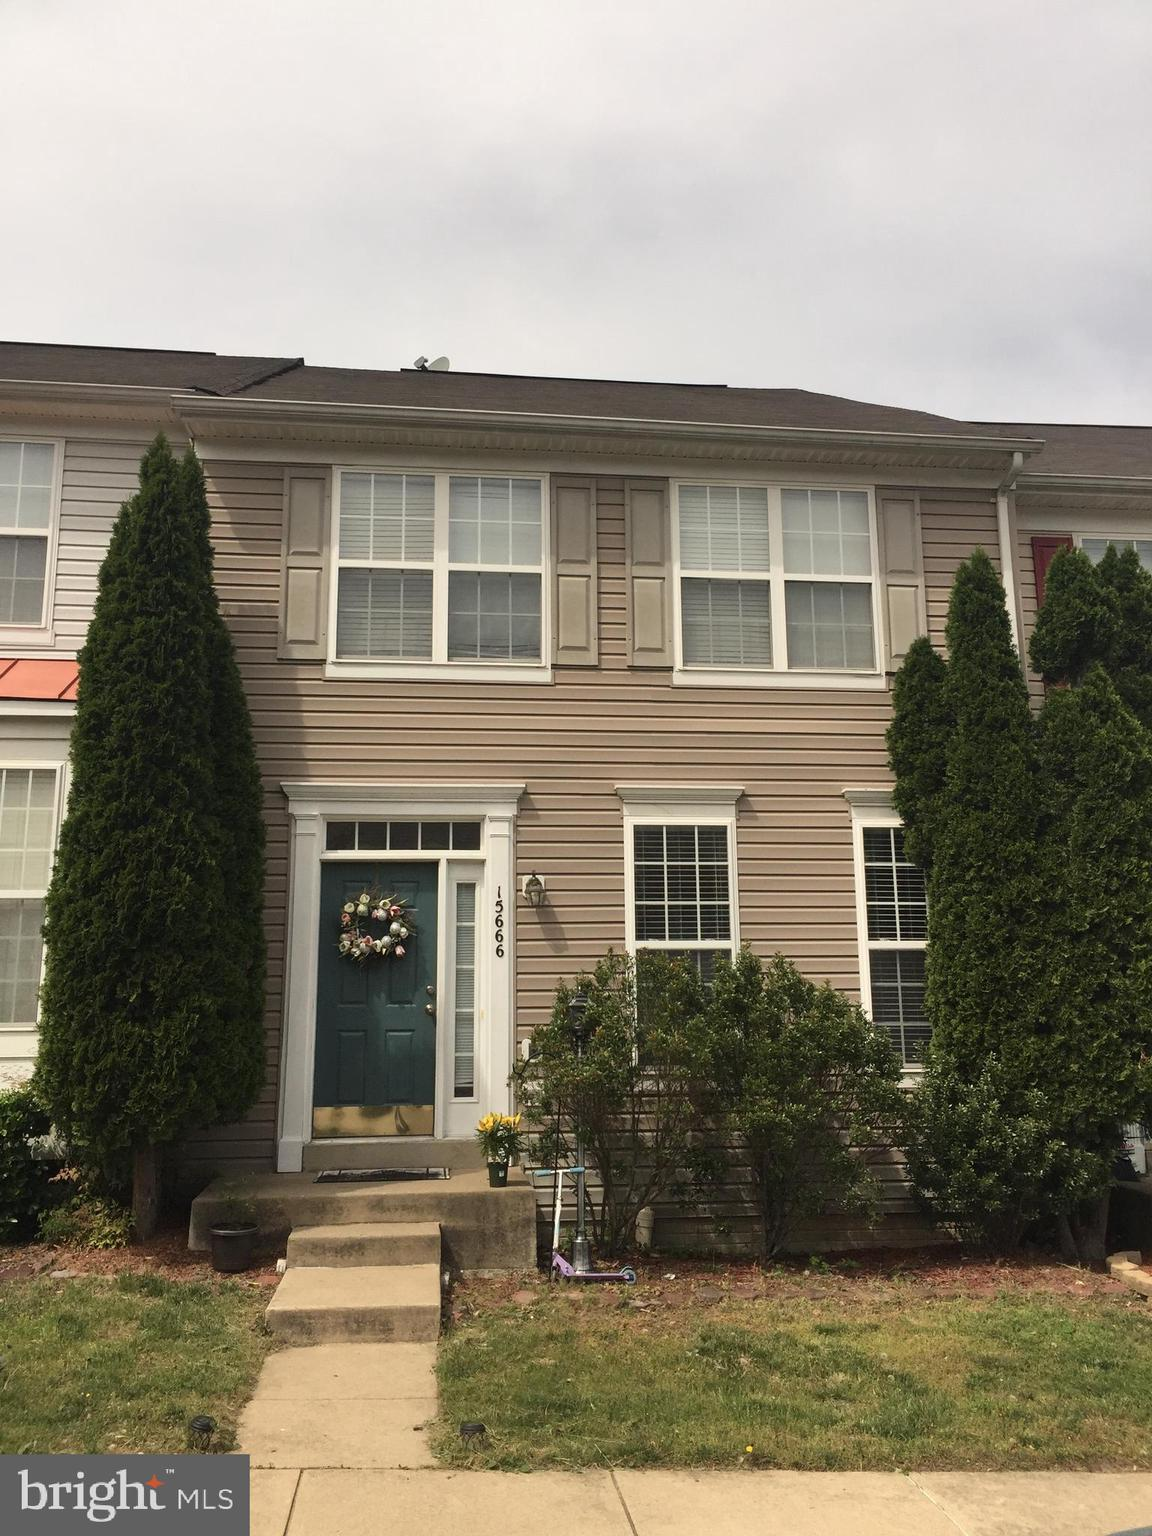 Call agent for showing at 571 265 7380, this townhouse is 1780 Sq.Ft plus a full basement, of the largest in the community at desirable Markhams Grant. Fully finished walk out basement with room for an office or guest w/ closet and one full bathroom.        AC unit 2017.  BASEMENT CARPET 2017.  WATER HEATER 2017.  DECK 2015. NEW GRANITE KITCHEN COUNTER COMING UP.    Deck with tree view- just a few streets at Markhams Grant have a tree view. Beautiful hardwood floors on stairs leading to upper level and to basement, upstairs and two bedrooms, Pergo on mail level. Upper level LAUNDRY, Master bedroom with vaulted ceilings and walk in closet, Master bathroom with soaking tub, and shower, double sink hallway bathroom. Less than a mile from VRE station, I-95, Restaurants, Stonebridge at Potomac Town Center, Schools and Shopping.